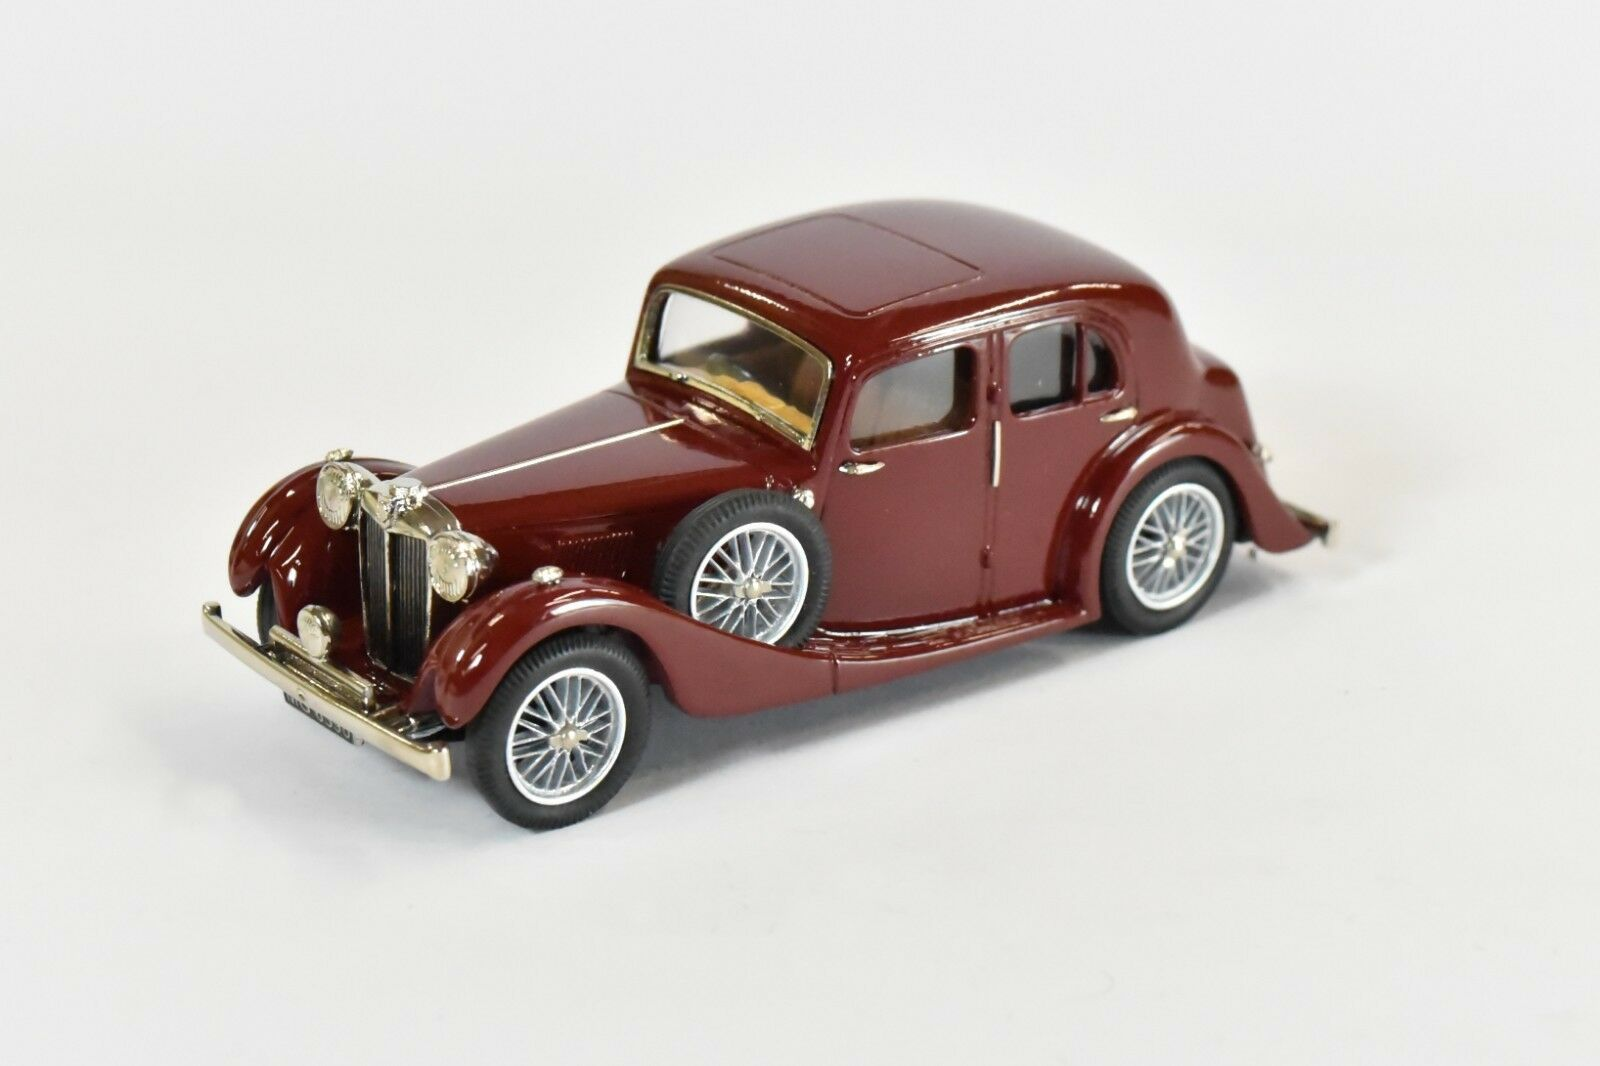 Brooklin modelle 1937 mg va - ldm84a